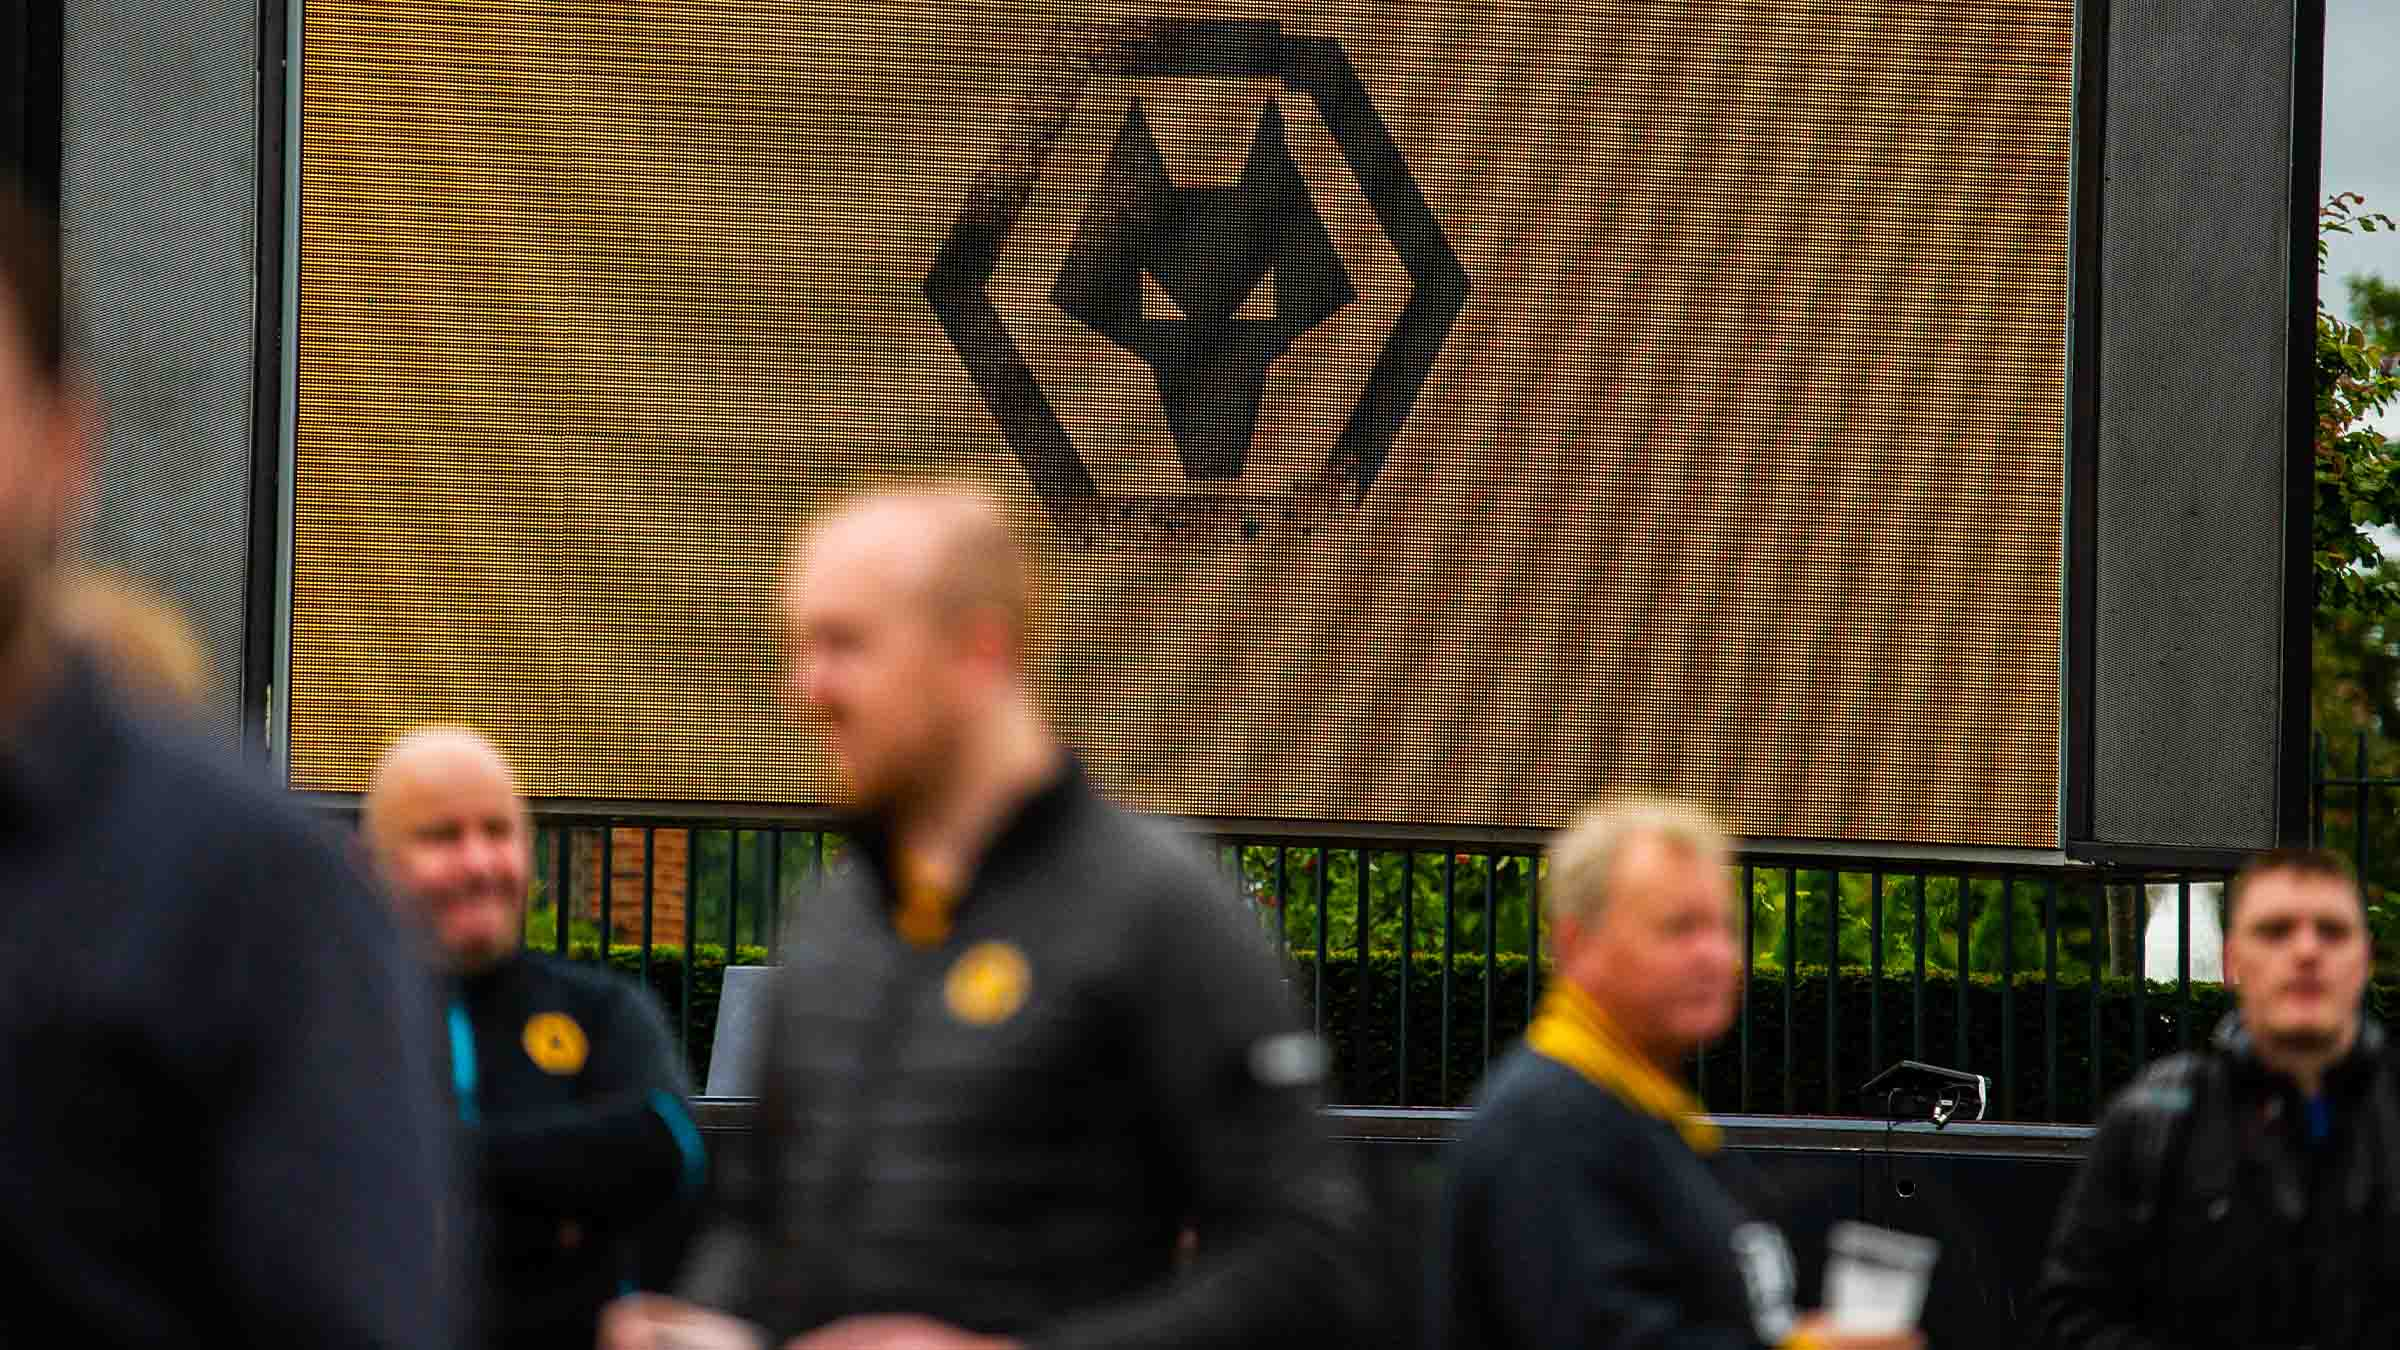 Covid spot checks in place at Molineux this Sunday